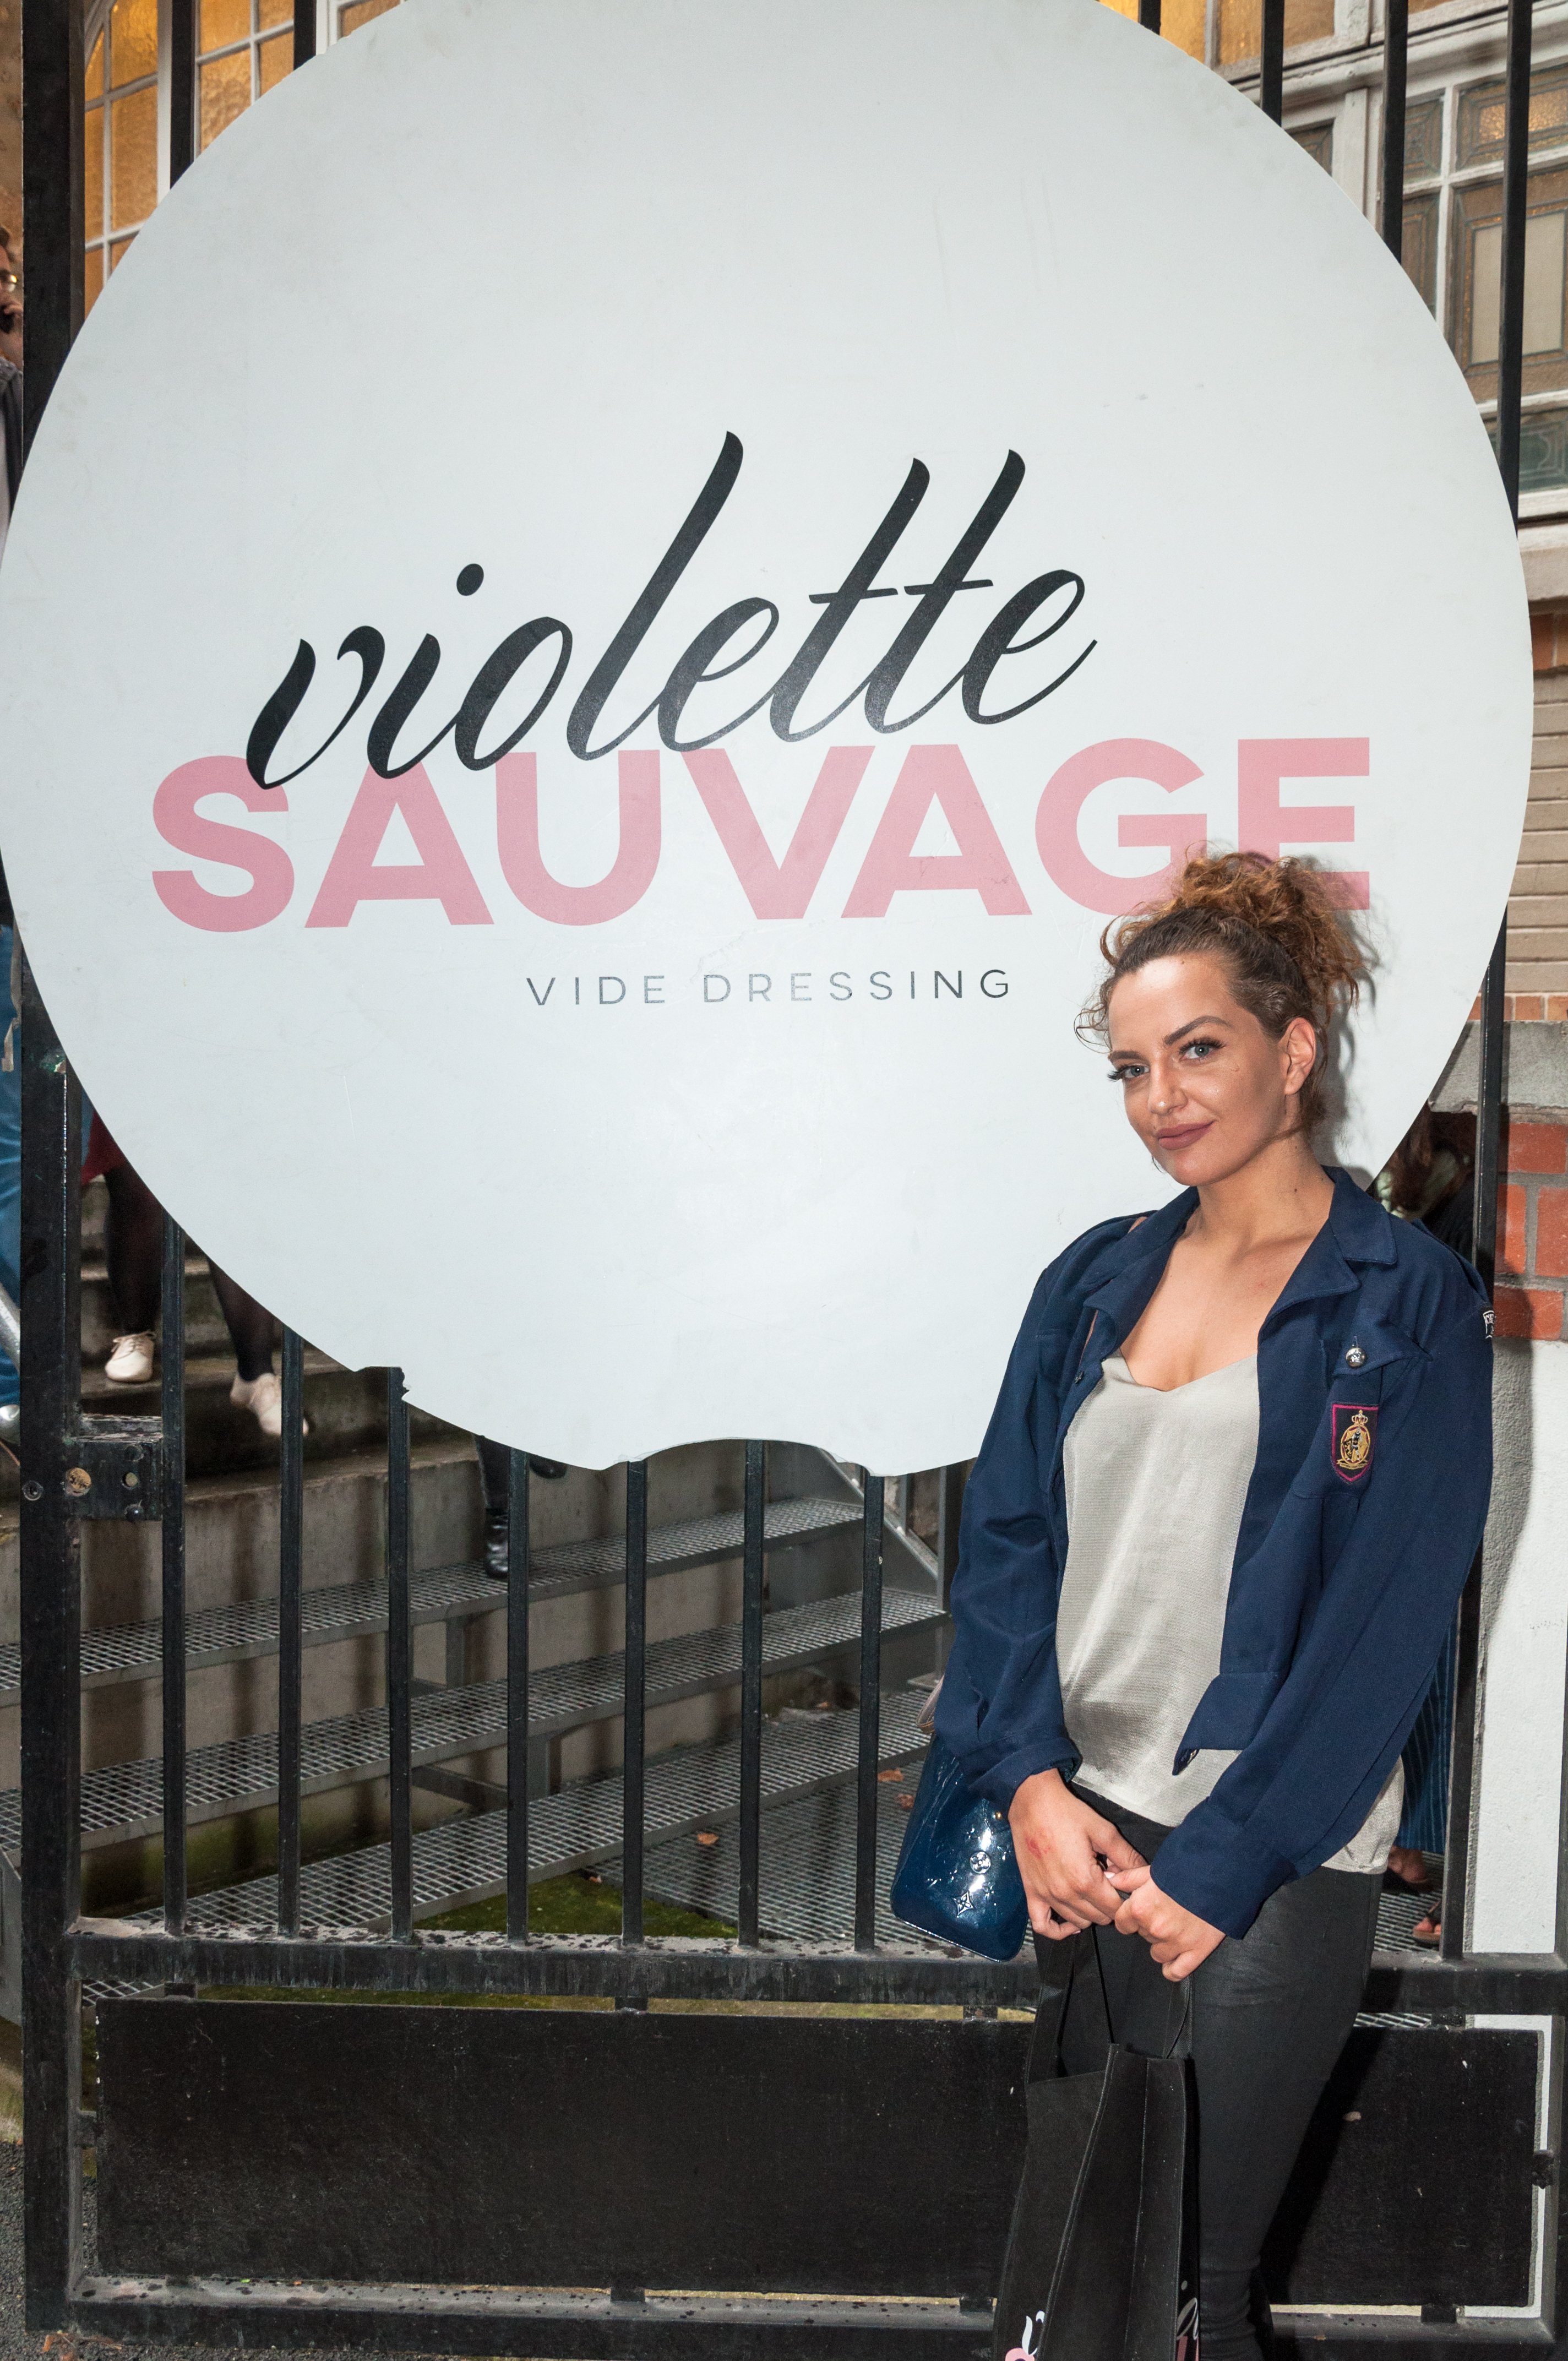 Violette Sauvage vide dressing photocall